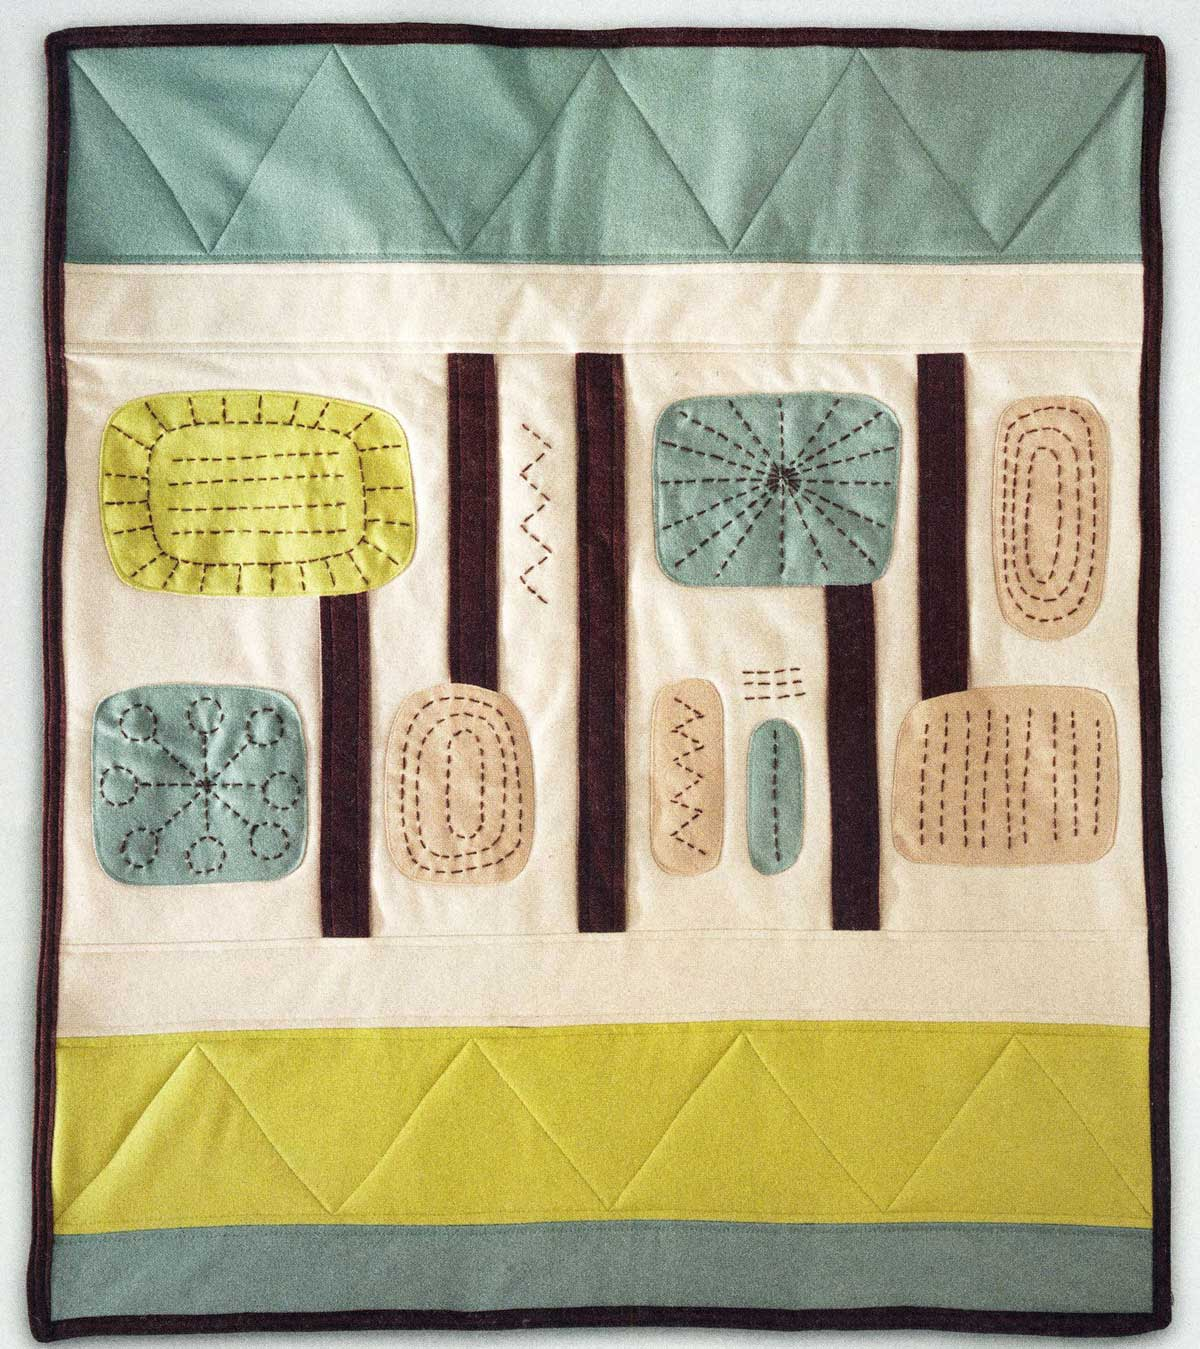 Modern Hand Quilting Patterns : Stitch magazine: creating with fabric + thread, and Pendleton, too! Pendleton Woolen Mills